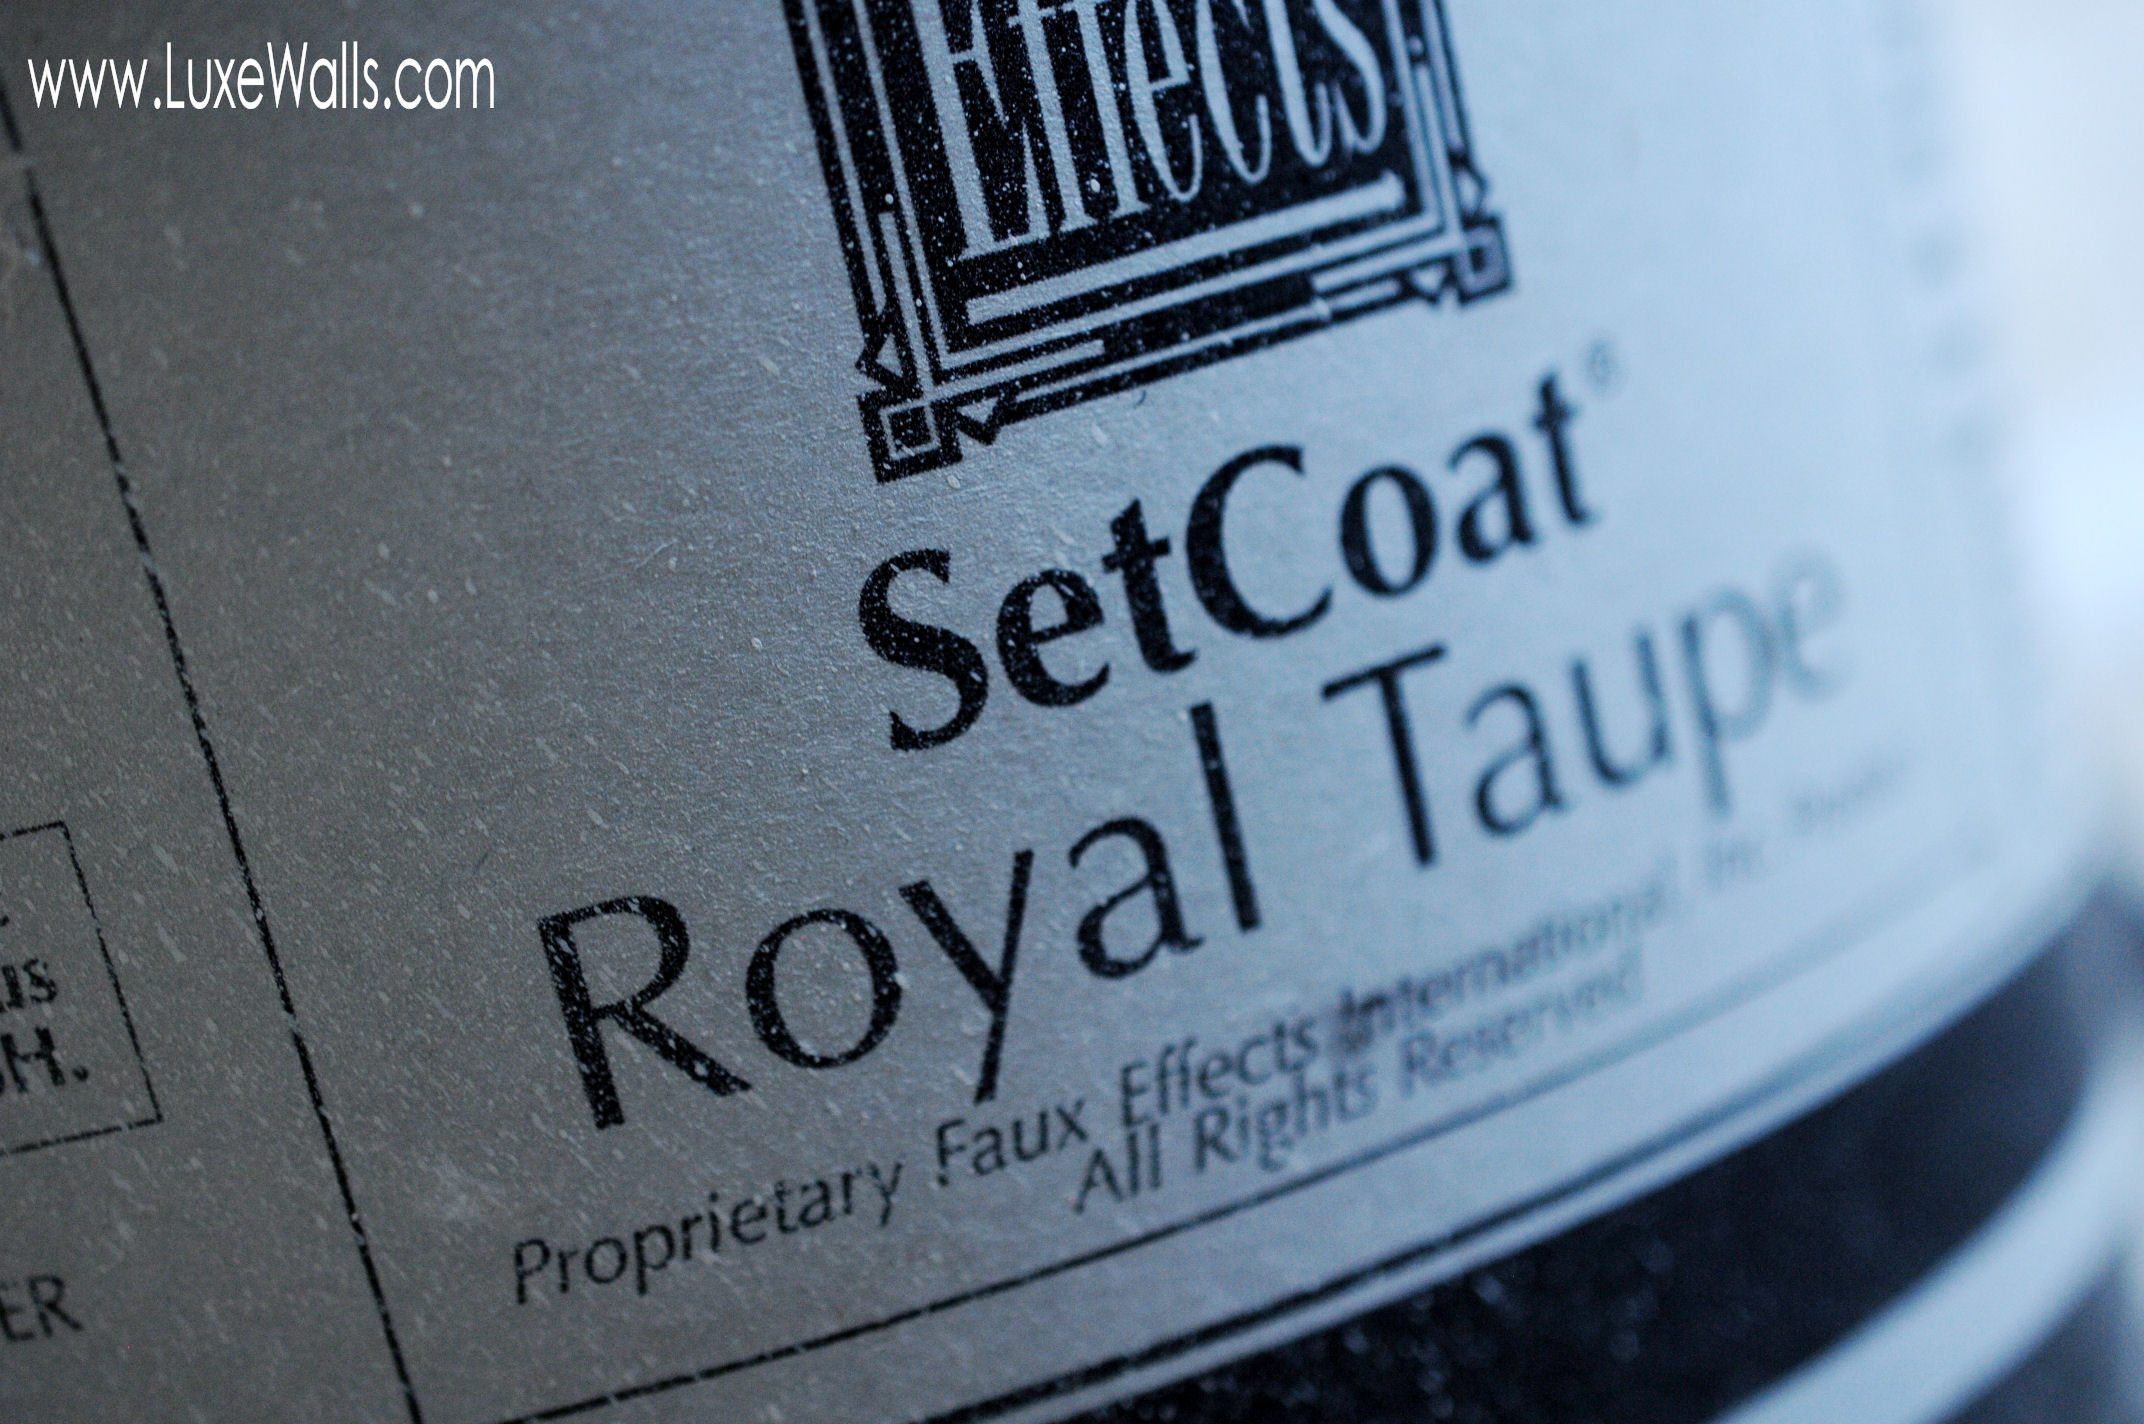 Faux Effects SetCoat, also among the line-up